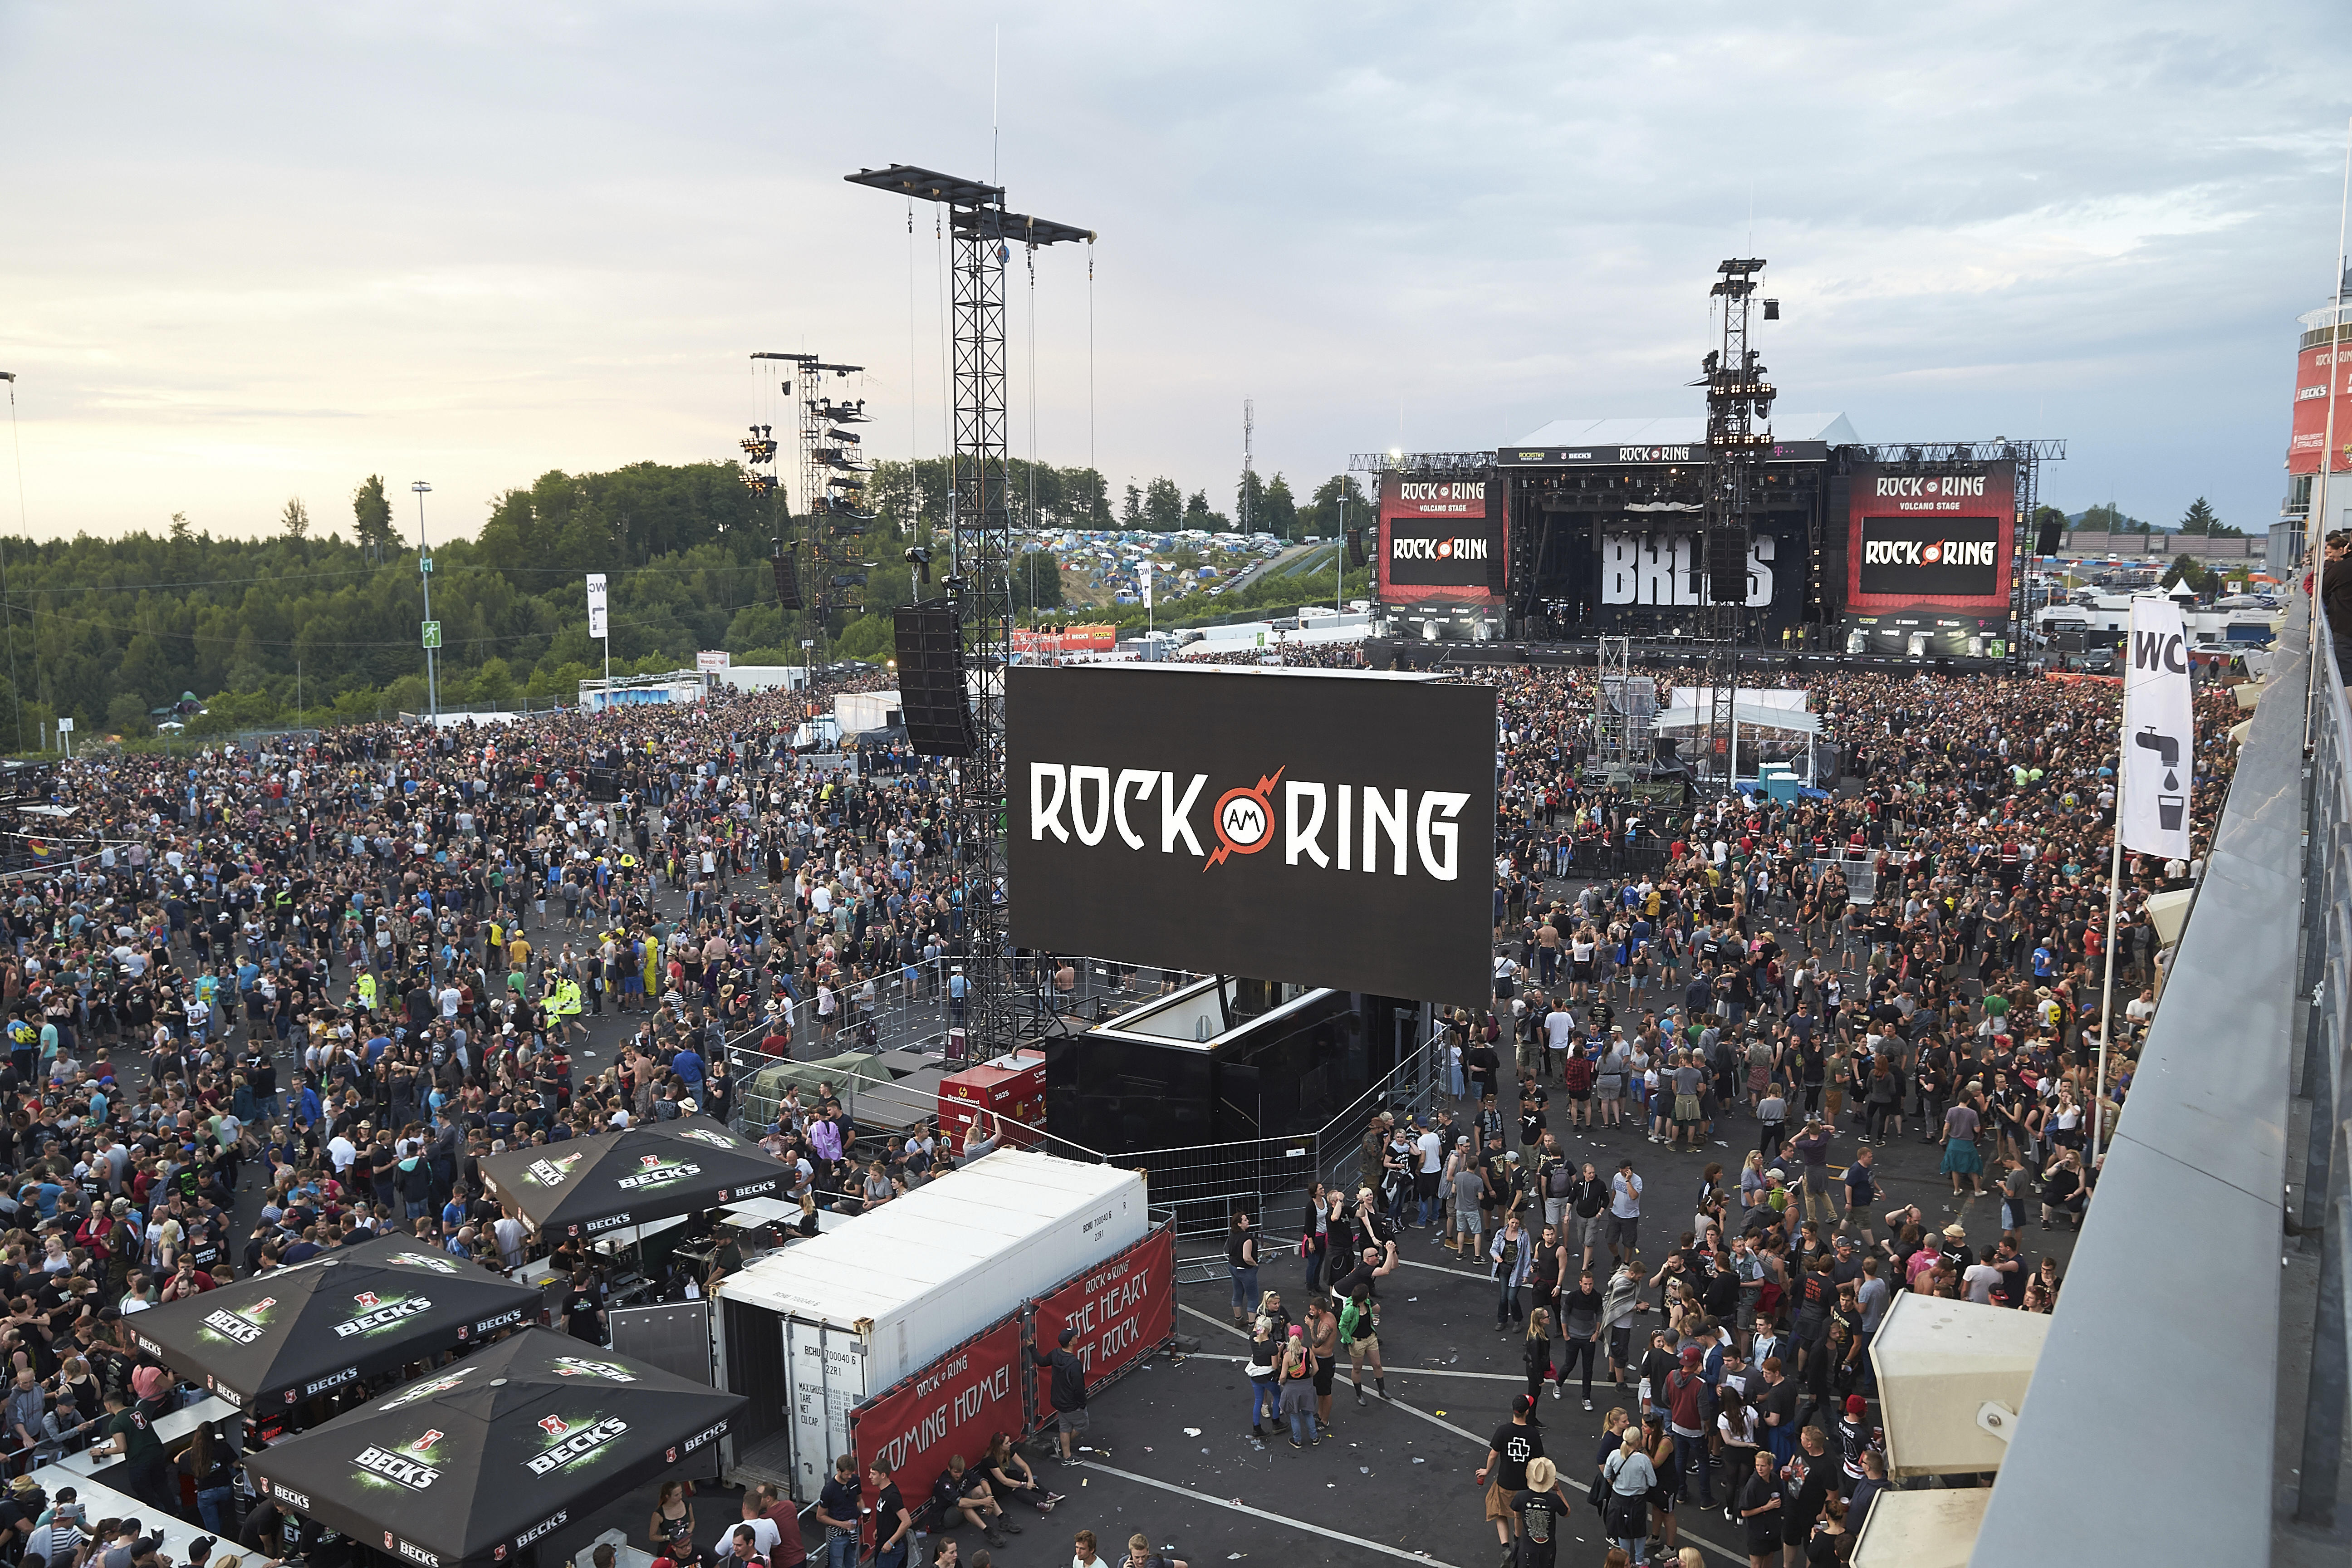 German rock fest cleared to resume after terror-threat scare ...